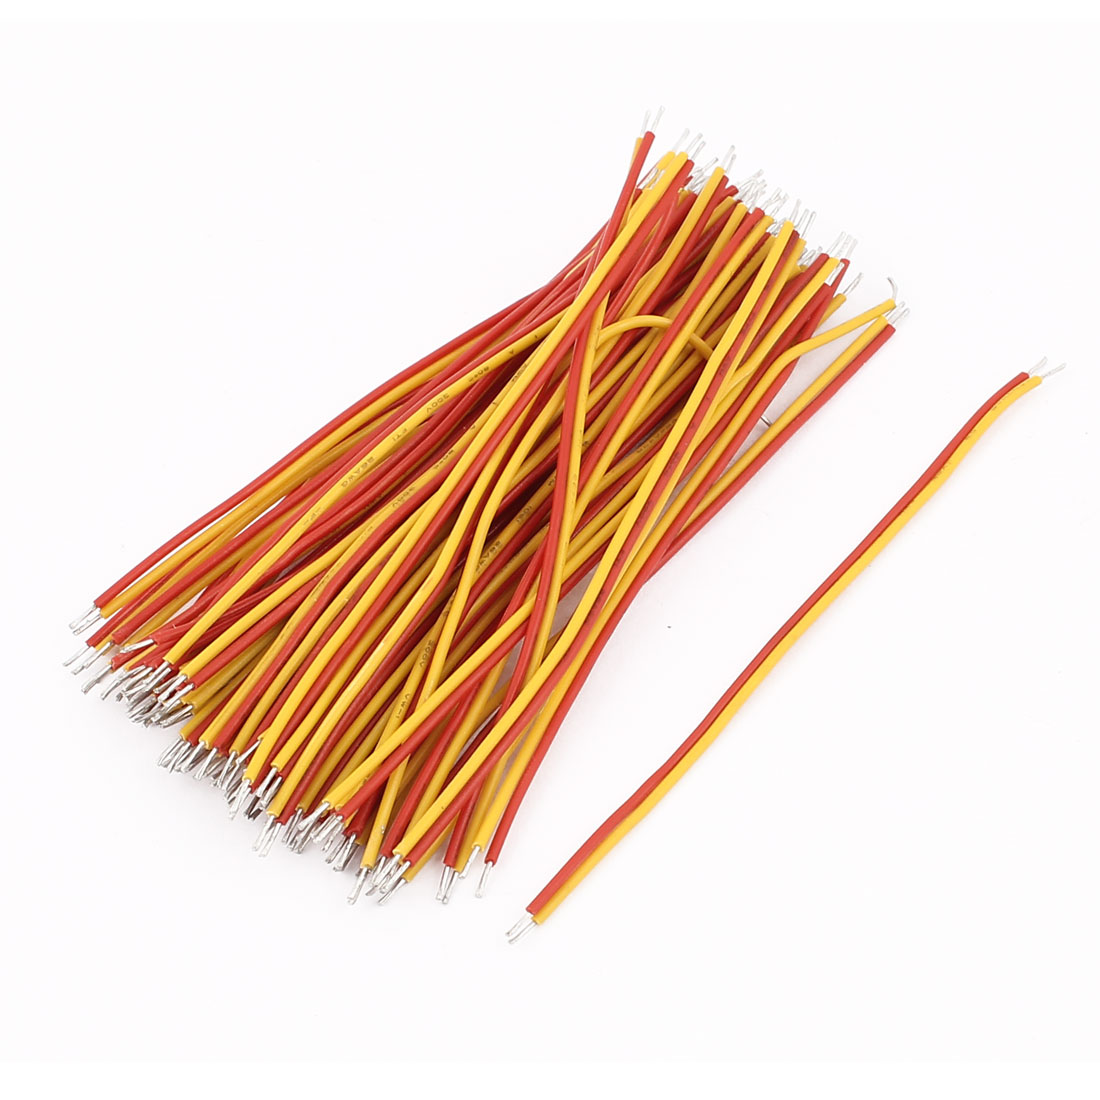 0.8mm x 80mm Dual Terminals Electric Insulated Flexible PVC Wire Cable 50Pcs